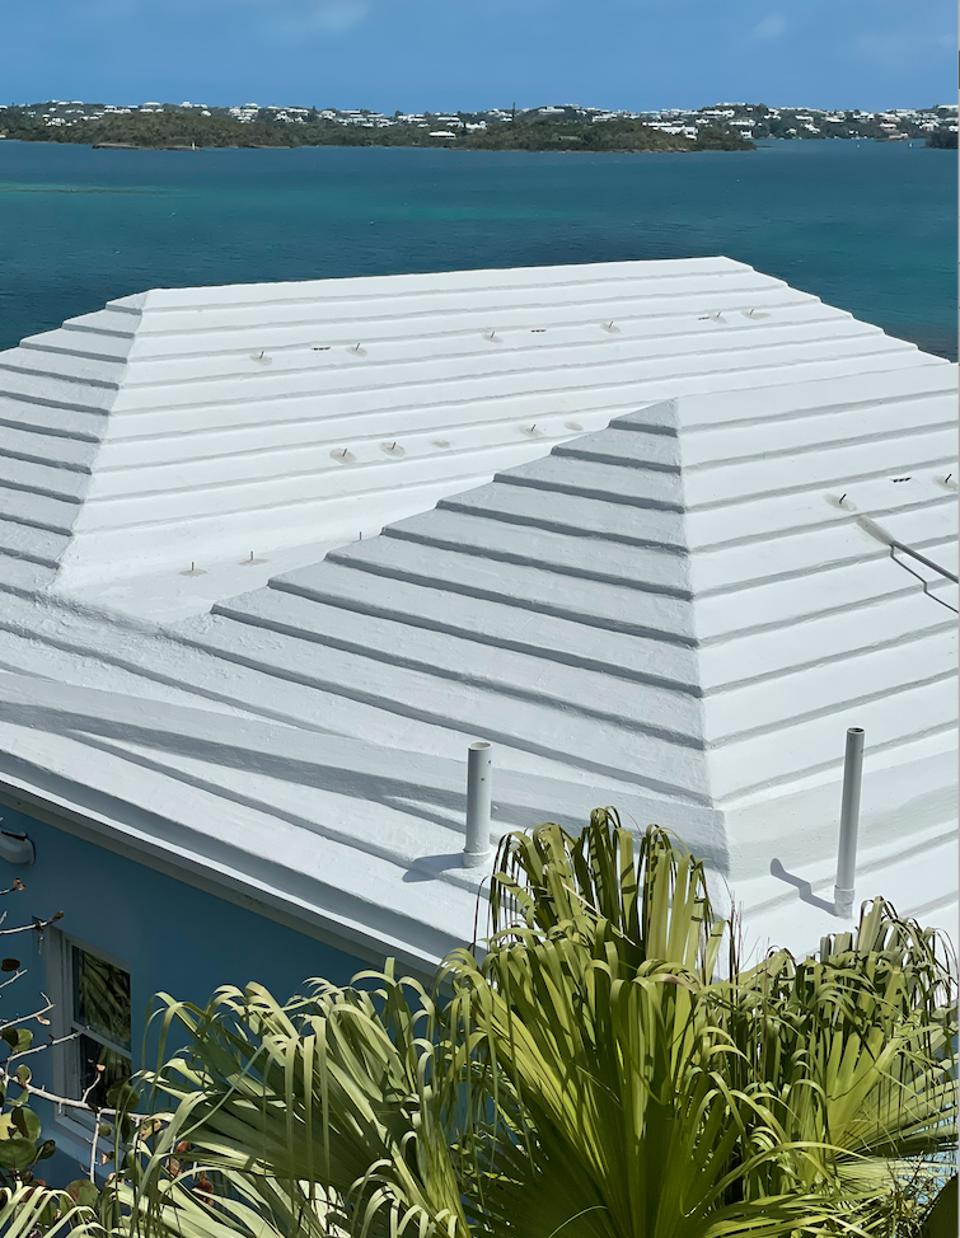 White stepped roofs of Bermuda